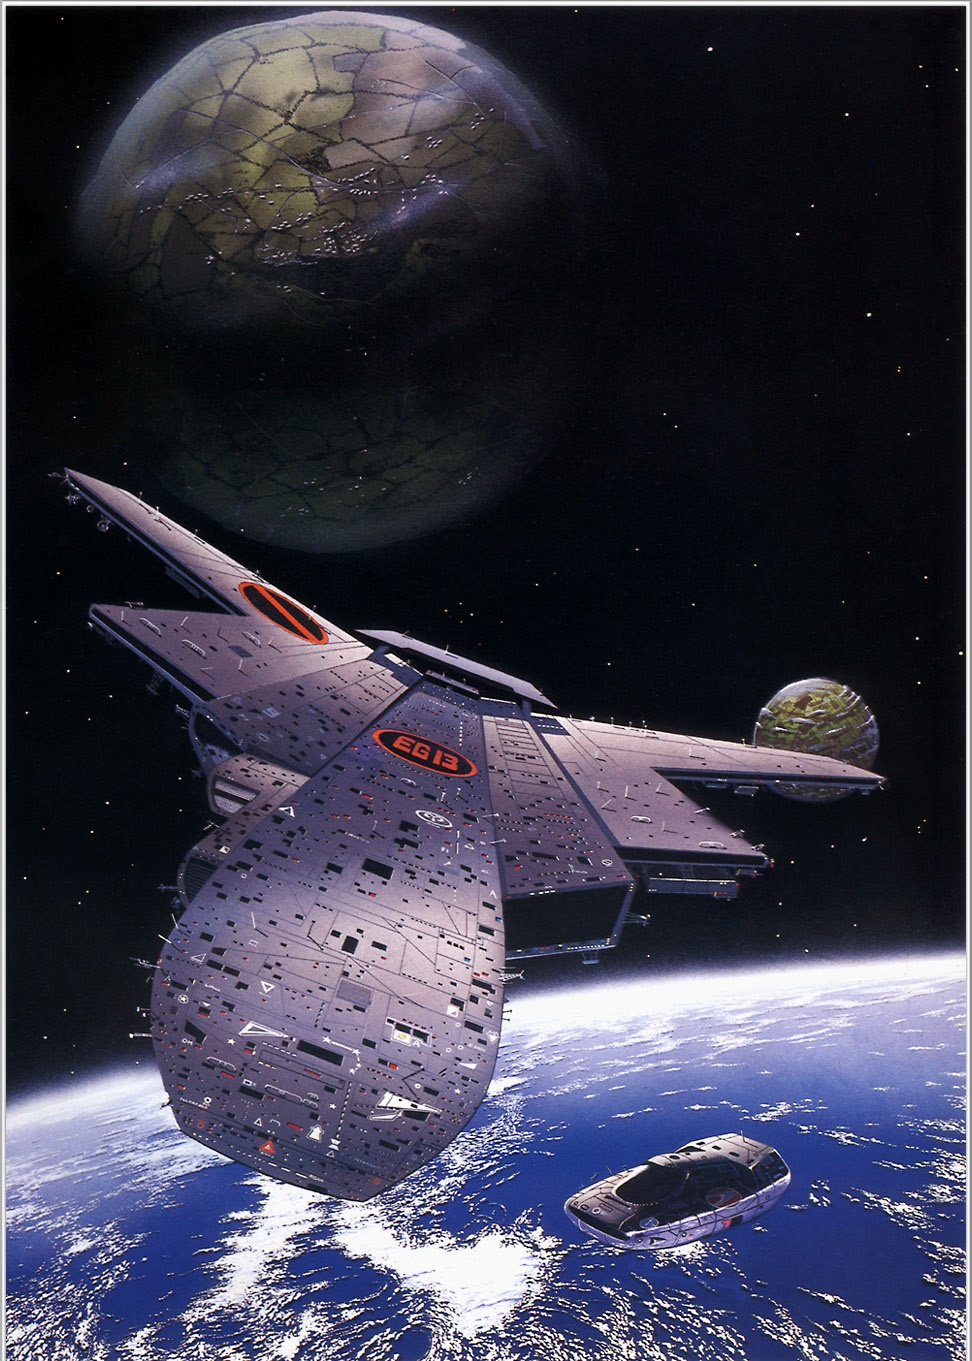 Tim White. Wandering worlds